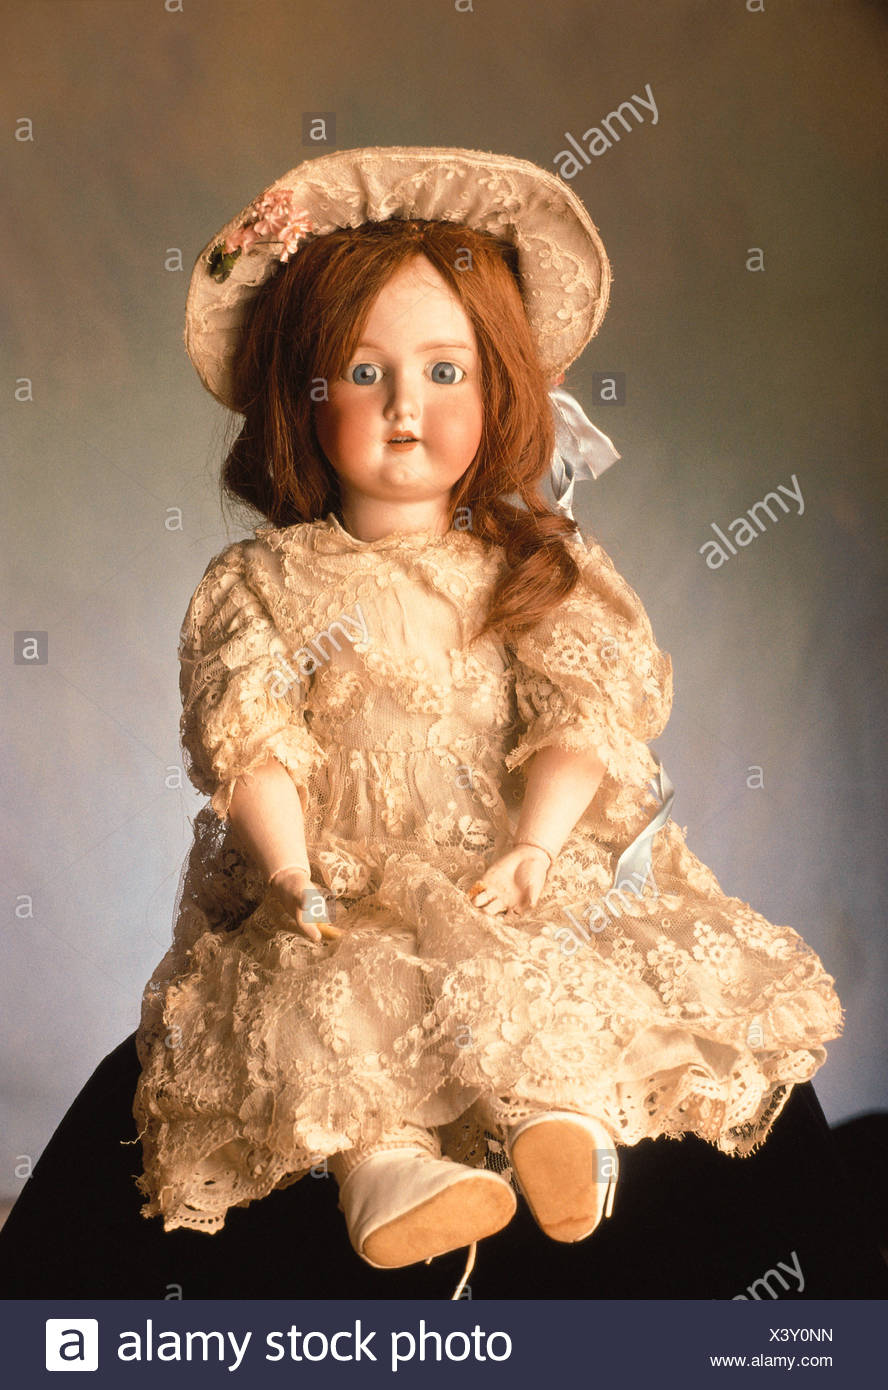 df8e685ee45 OLD FASHIONED DOLL IN LACE DRESS AND MATCHING HAT Stock Photo ...